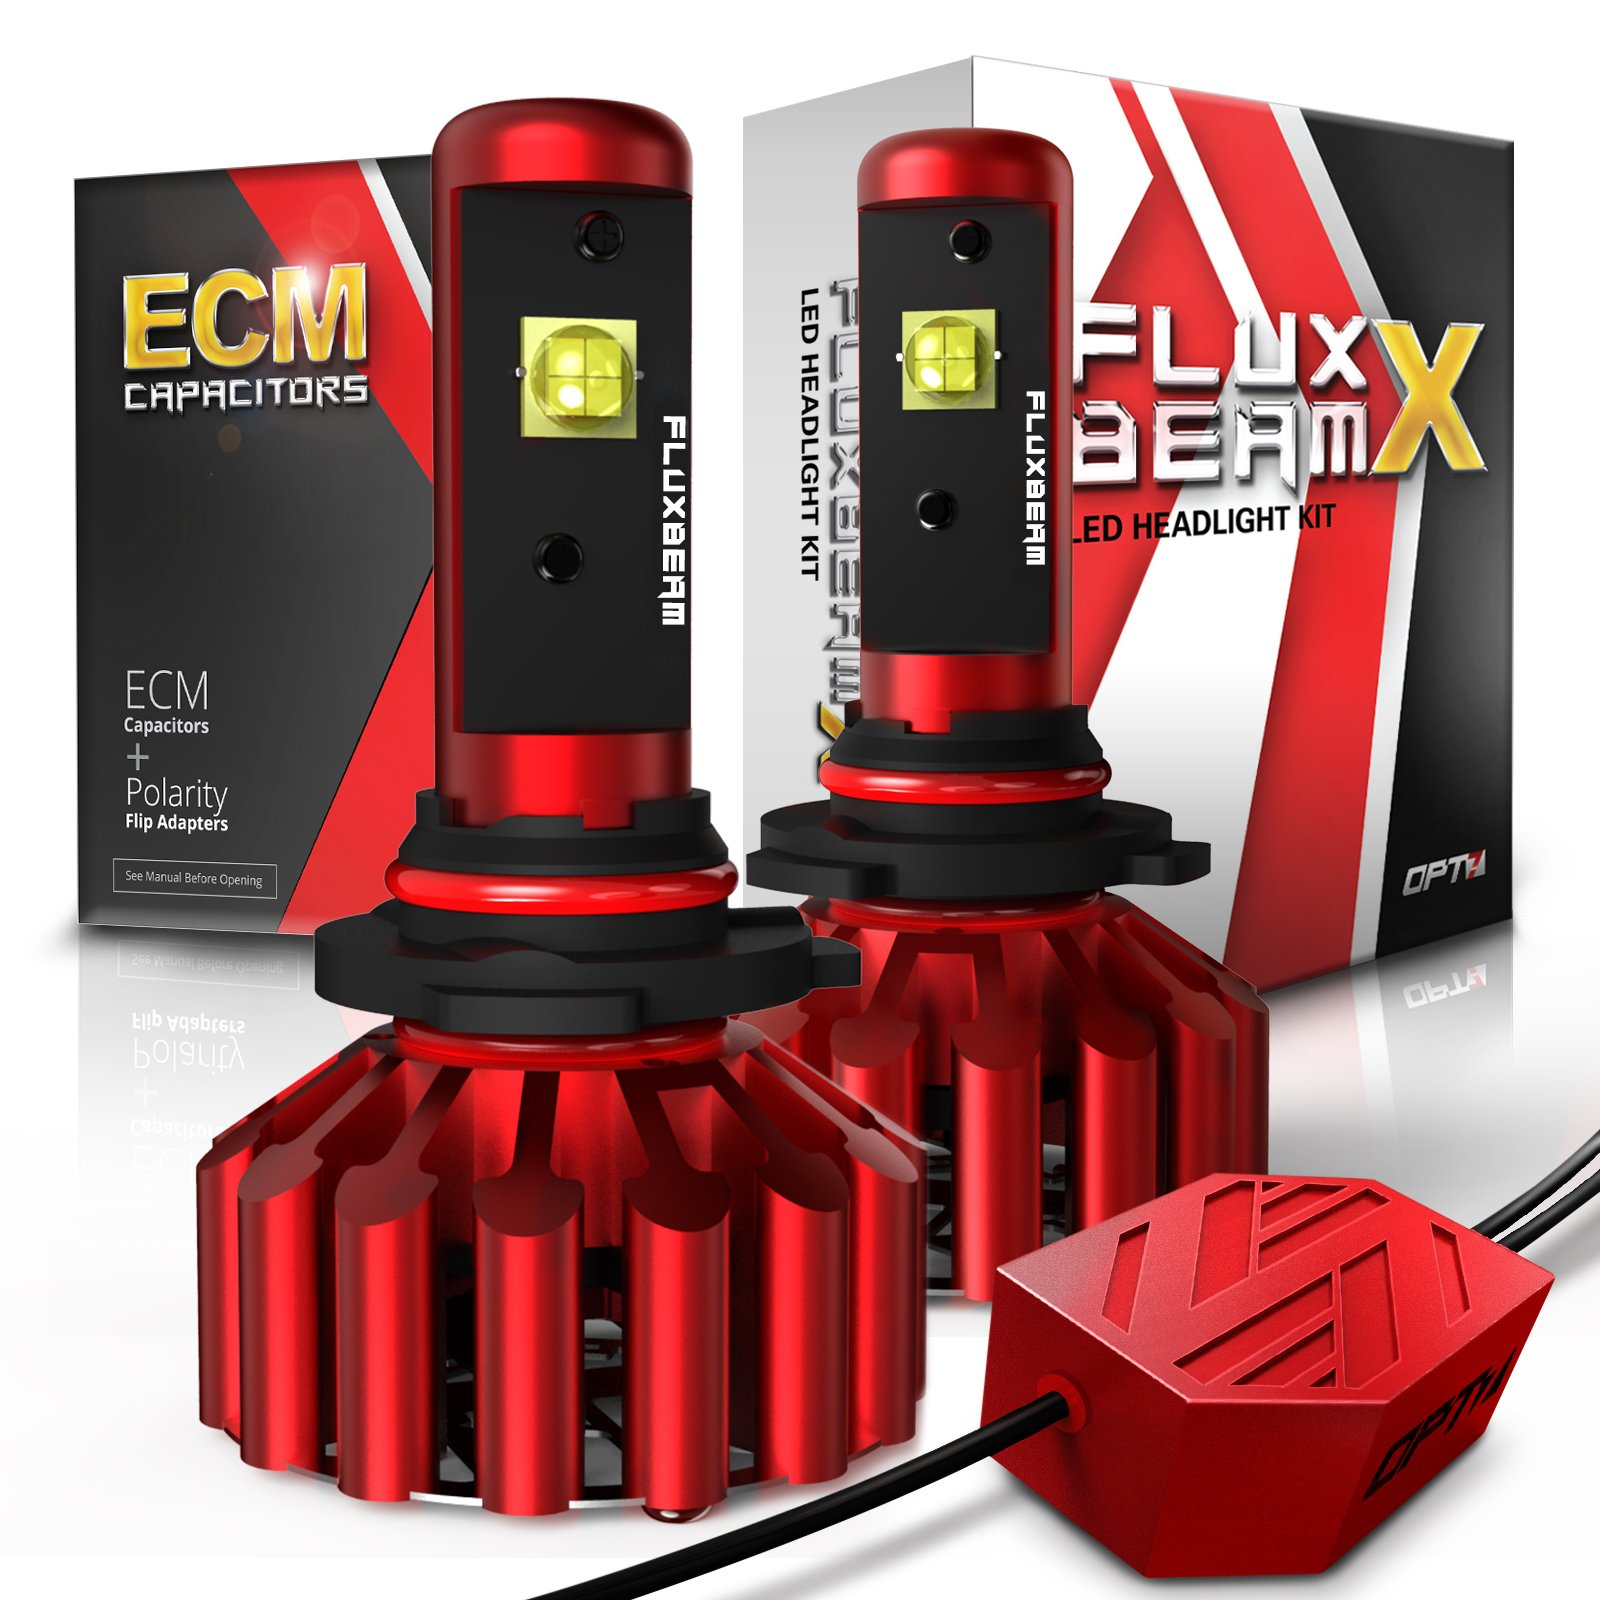 OPT7 Fluxbeam X 9005 LED Headlight High Beam Bulbs - 8,400LM 6000K Daytime White - All Bulb Sizes - 2 Year Warranty